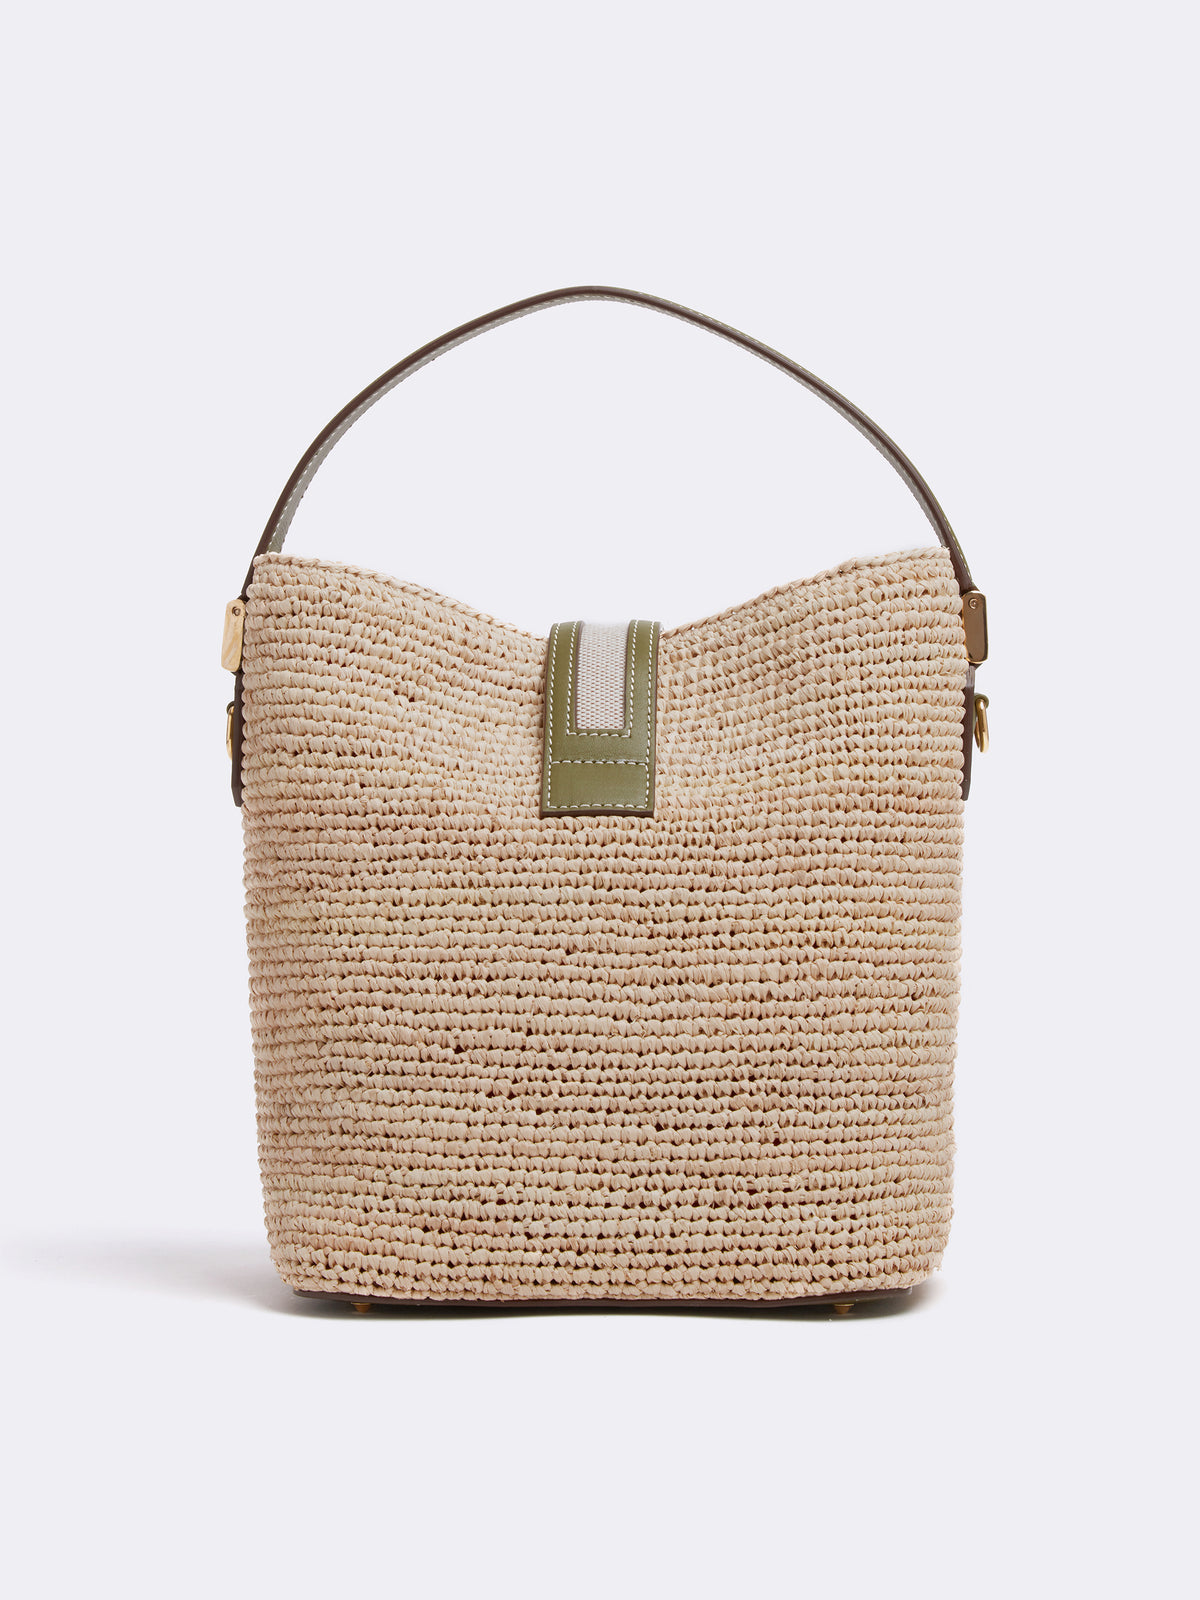 Mark Cross Murphy Raffia & Leather Bucket Bag Tumbled Grain Avocado / Birdseye / Natural Raffia Back